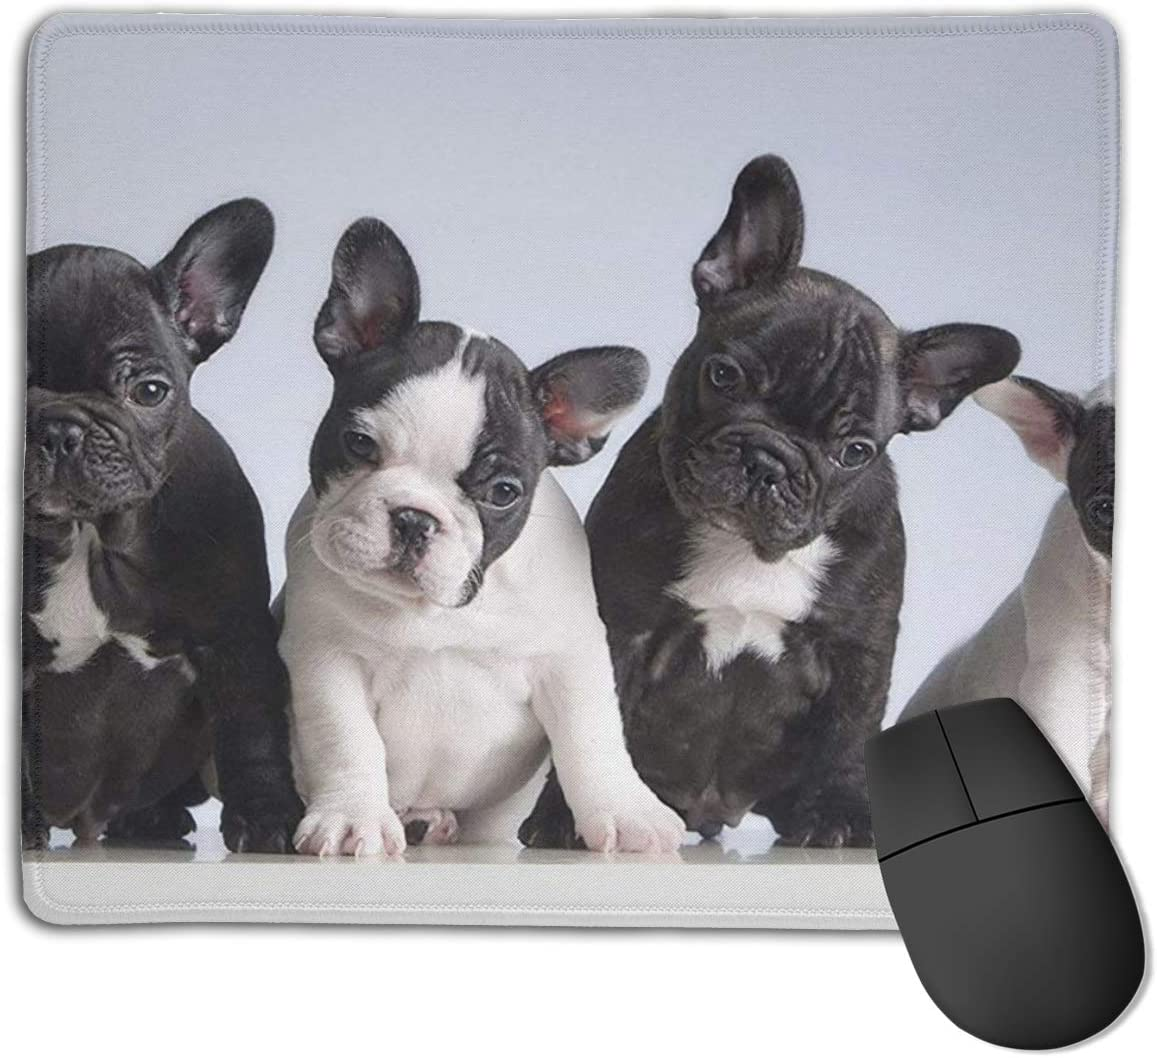 Joseph Mouse Pad,Non Slip Waterproof Rubber Base Mousepad for Laptop,Adorable French Bulldog Puppies Dog